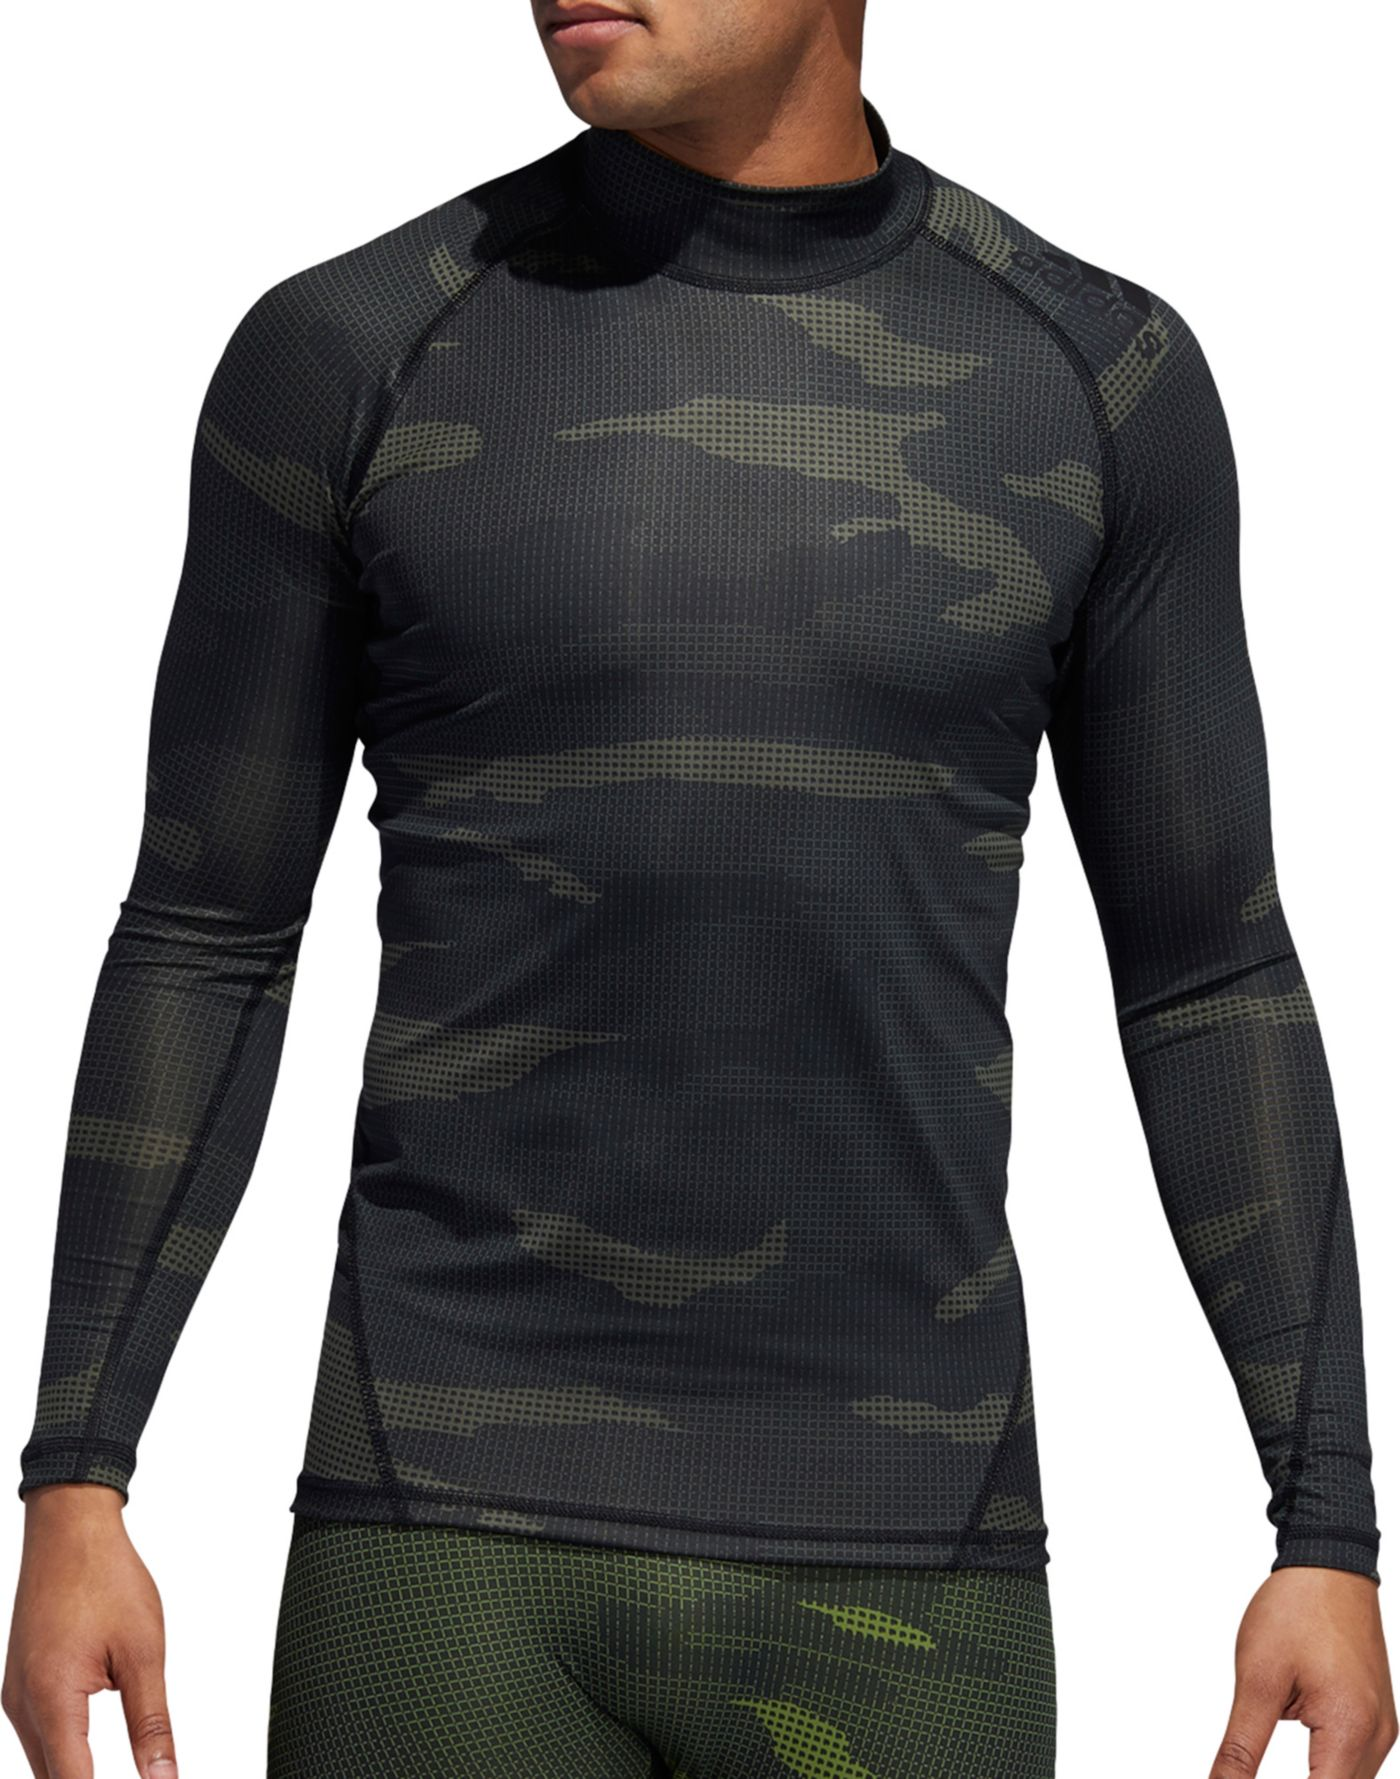 adidas Men's Alphaskin Camouflage Long Sleeve Shirt